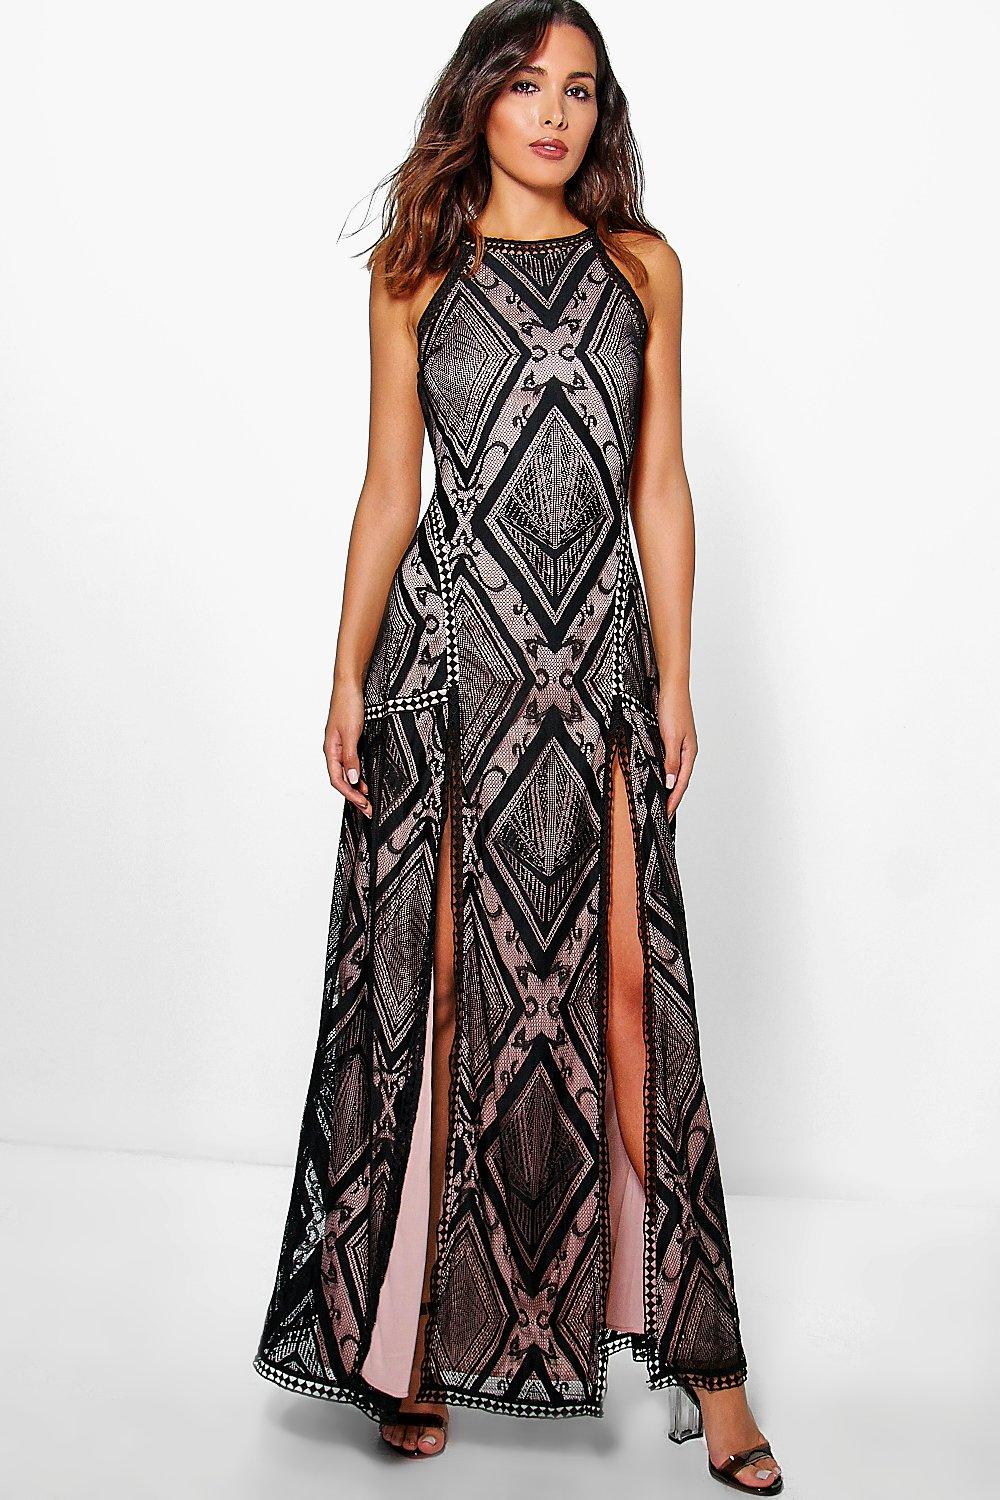 Boutique Zahiah Lace Open Back Maxi Dress